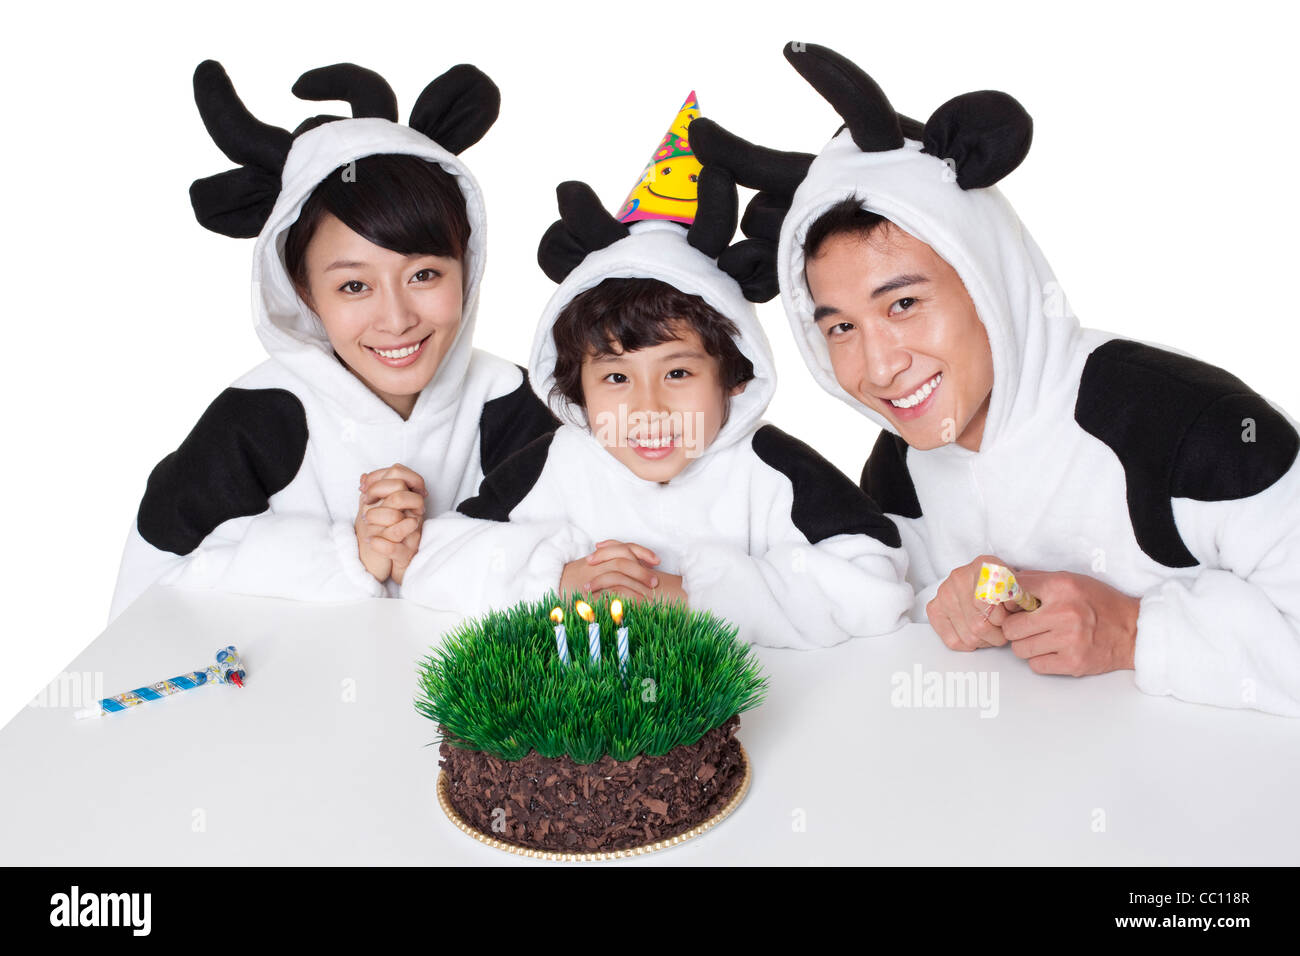 Swell Family In Cow Costumes With A Grass Birthday Cake Stock Photo Funny Birthday Cards Online Overcheapnameinfo